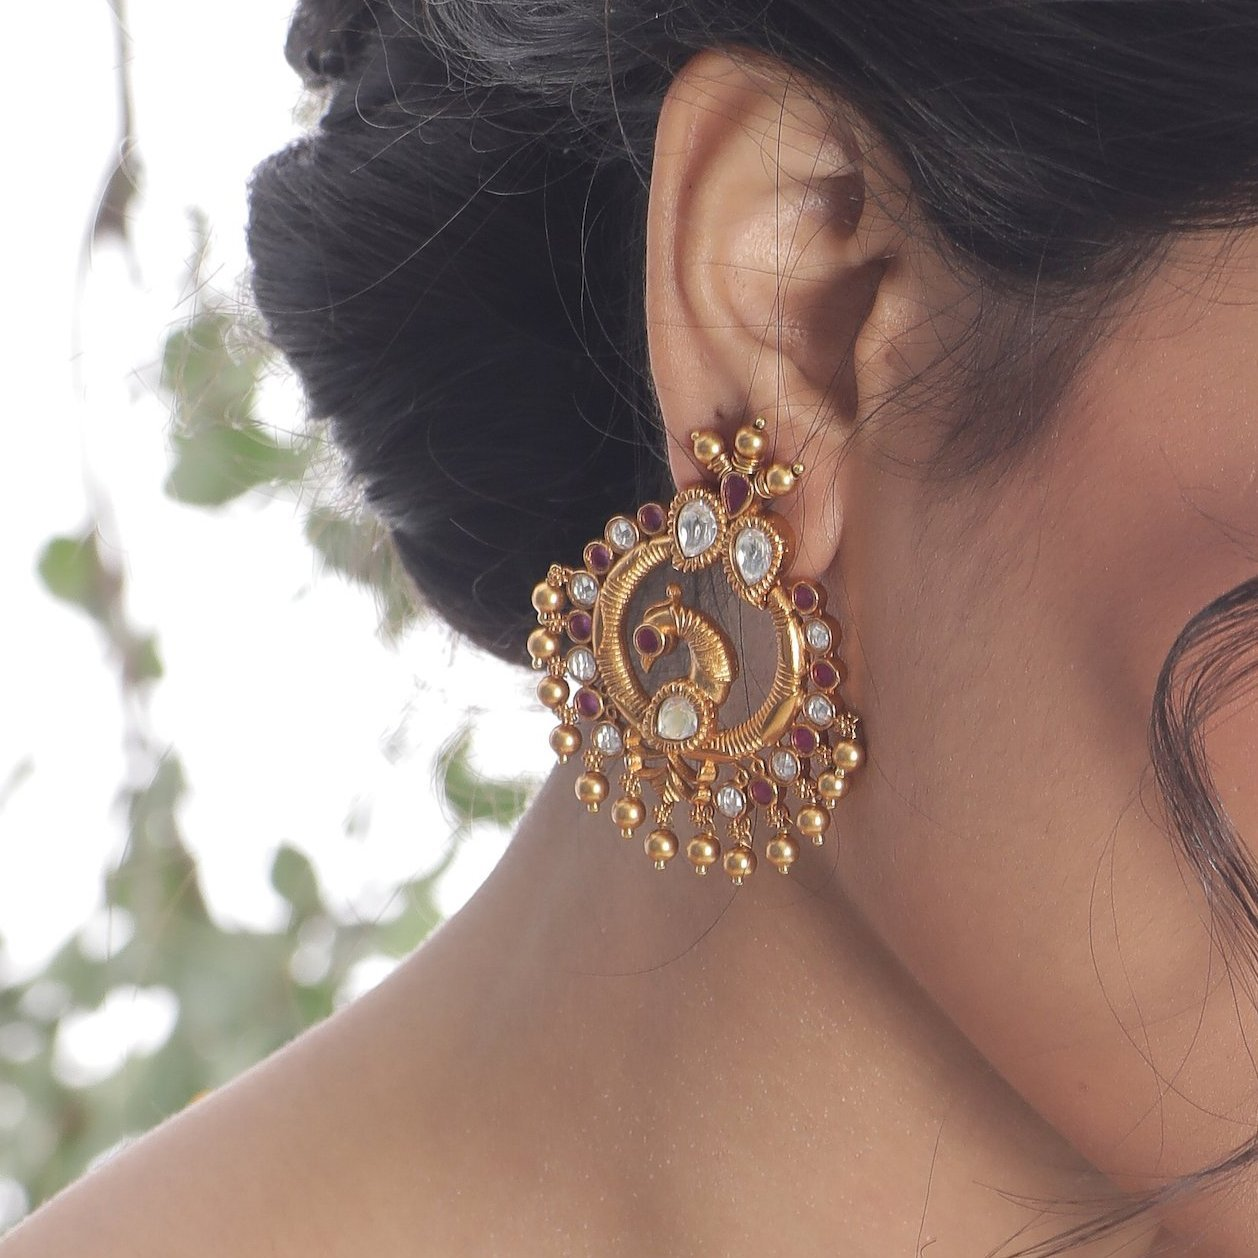 Cute Earring From Tarinika